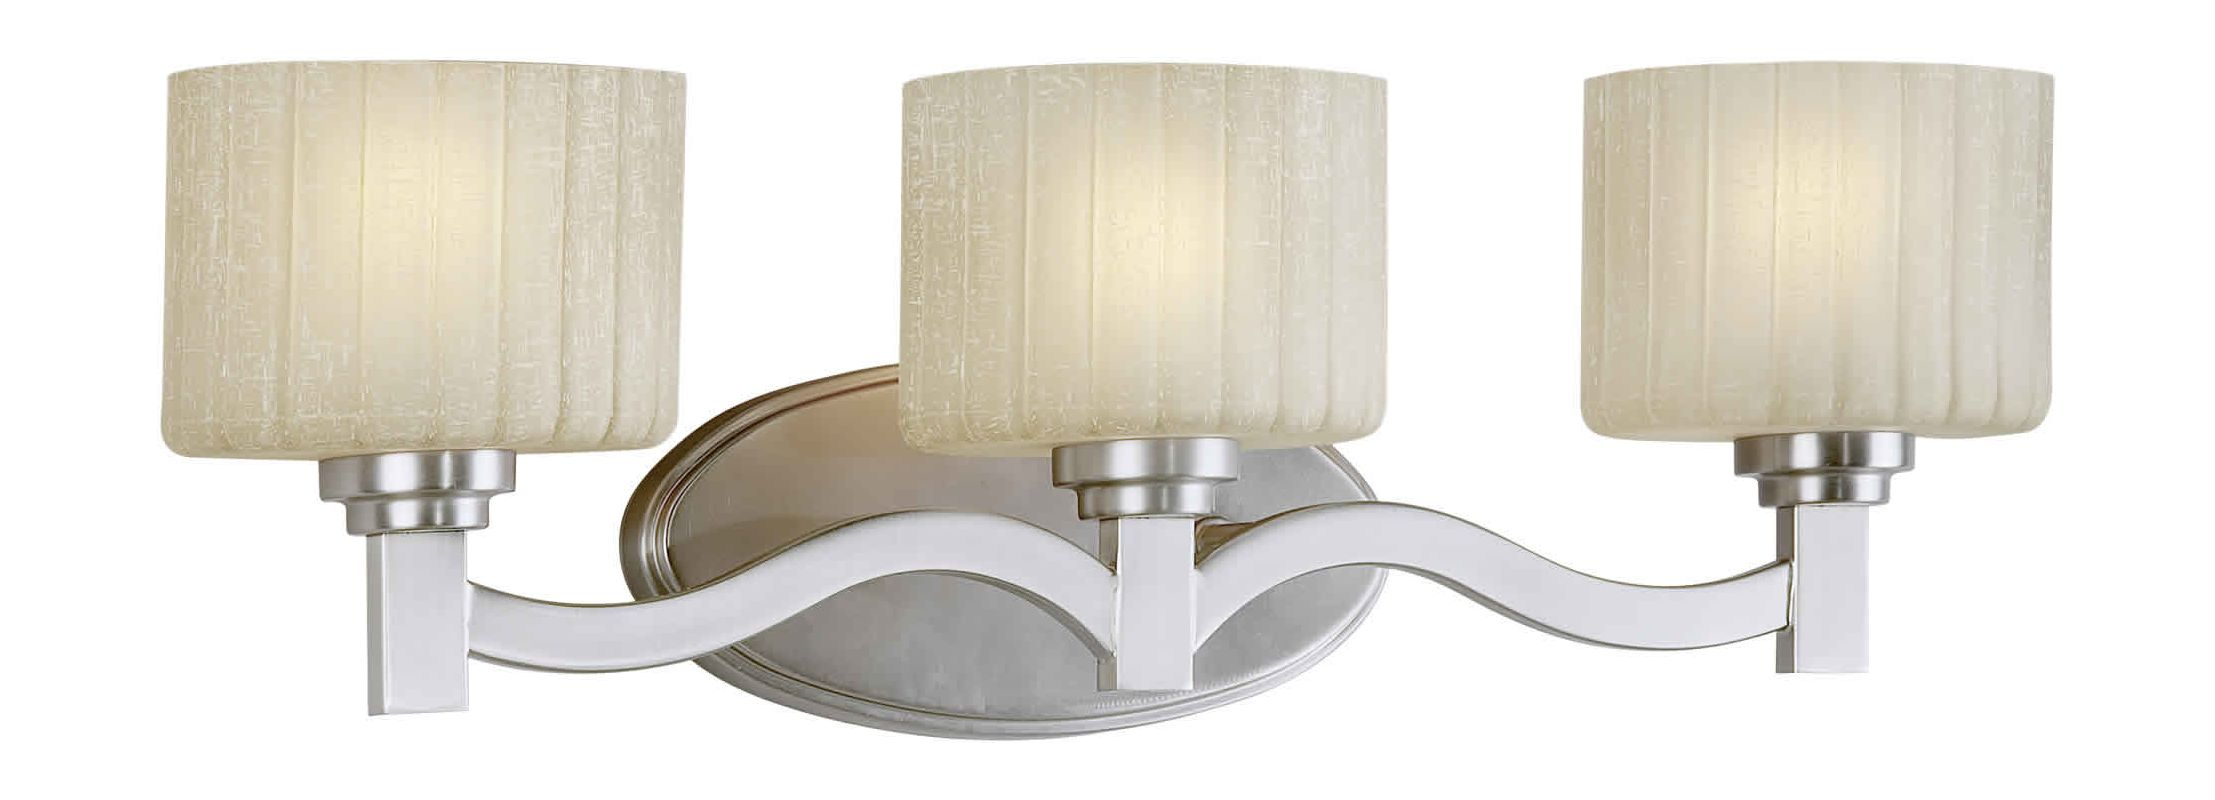 Forte Lighting 5388-03 24-Inch Wide Indoor Up Lighting Wall Sconce Sale $150.00 ITEM: bci1233009 ID#:5388-03-55 UPC: 93185039965 :